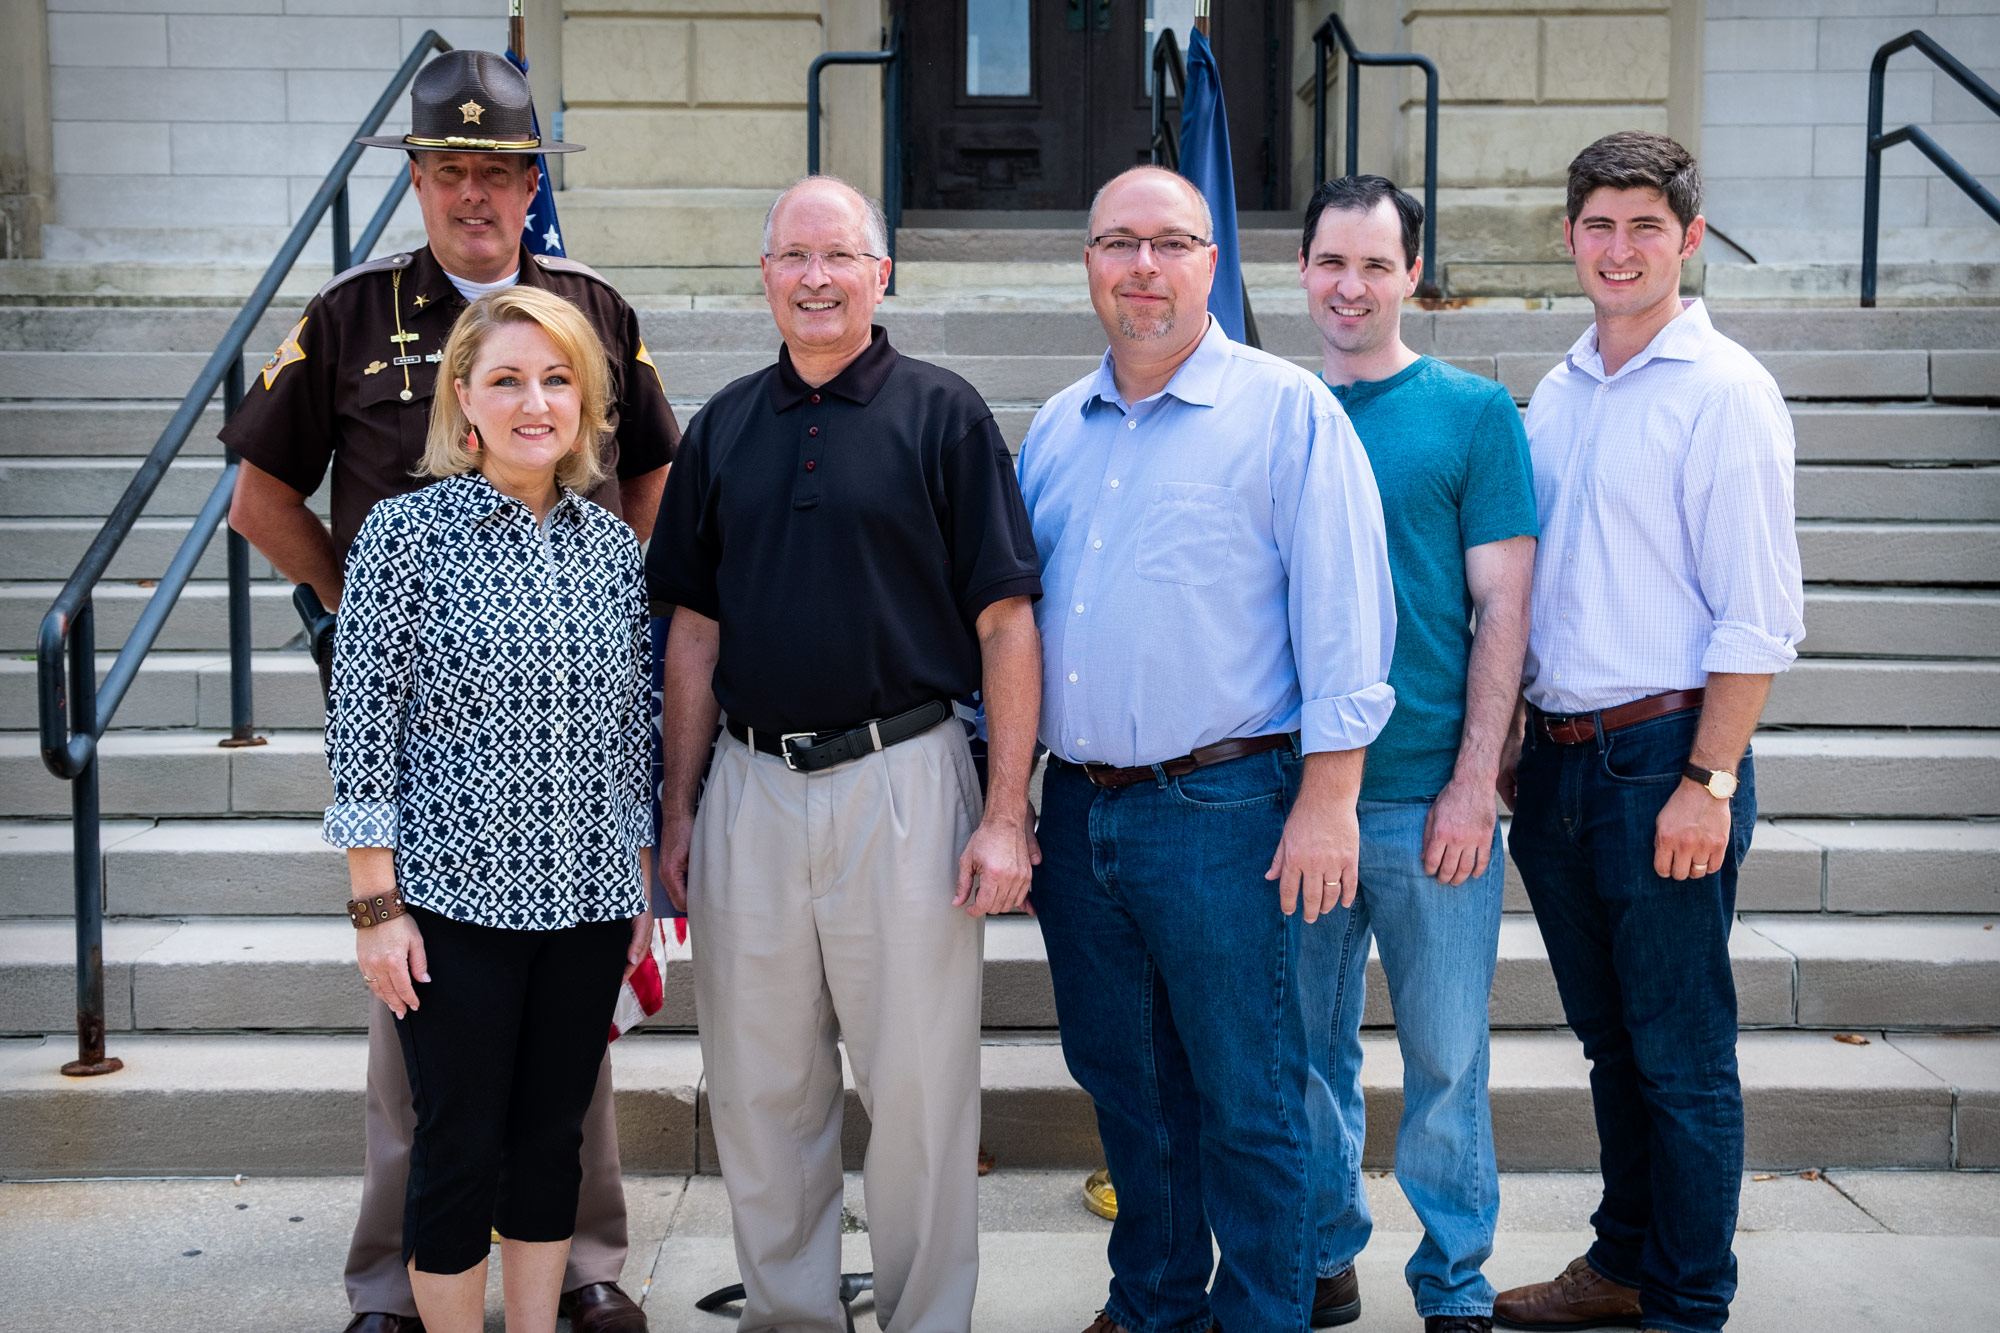 Brad Rogers for Commissioner Endorsements - From left to right; Sheriff Kyle Dukes, Rep. Christy Stutzman, Candidate for Commissioner Brad Rogers, Rep. Curt Nisly, Councilman Mike Orgill, Rep. Timothy Wesco.